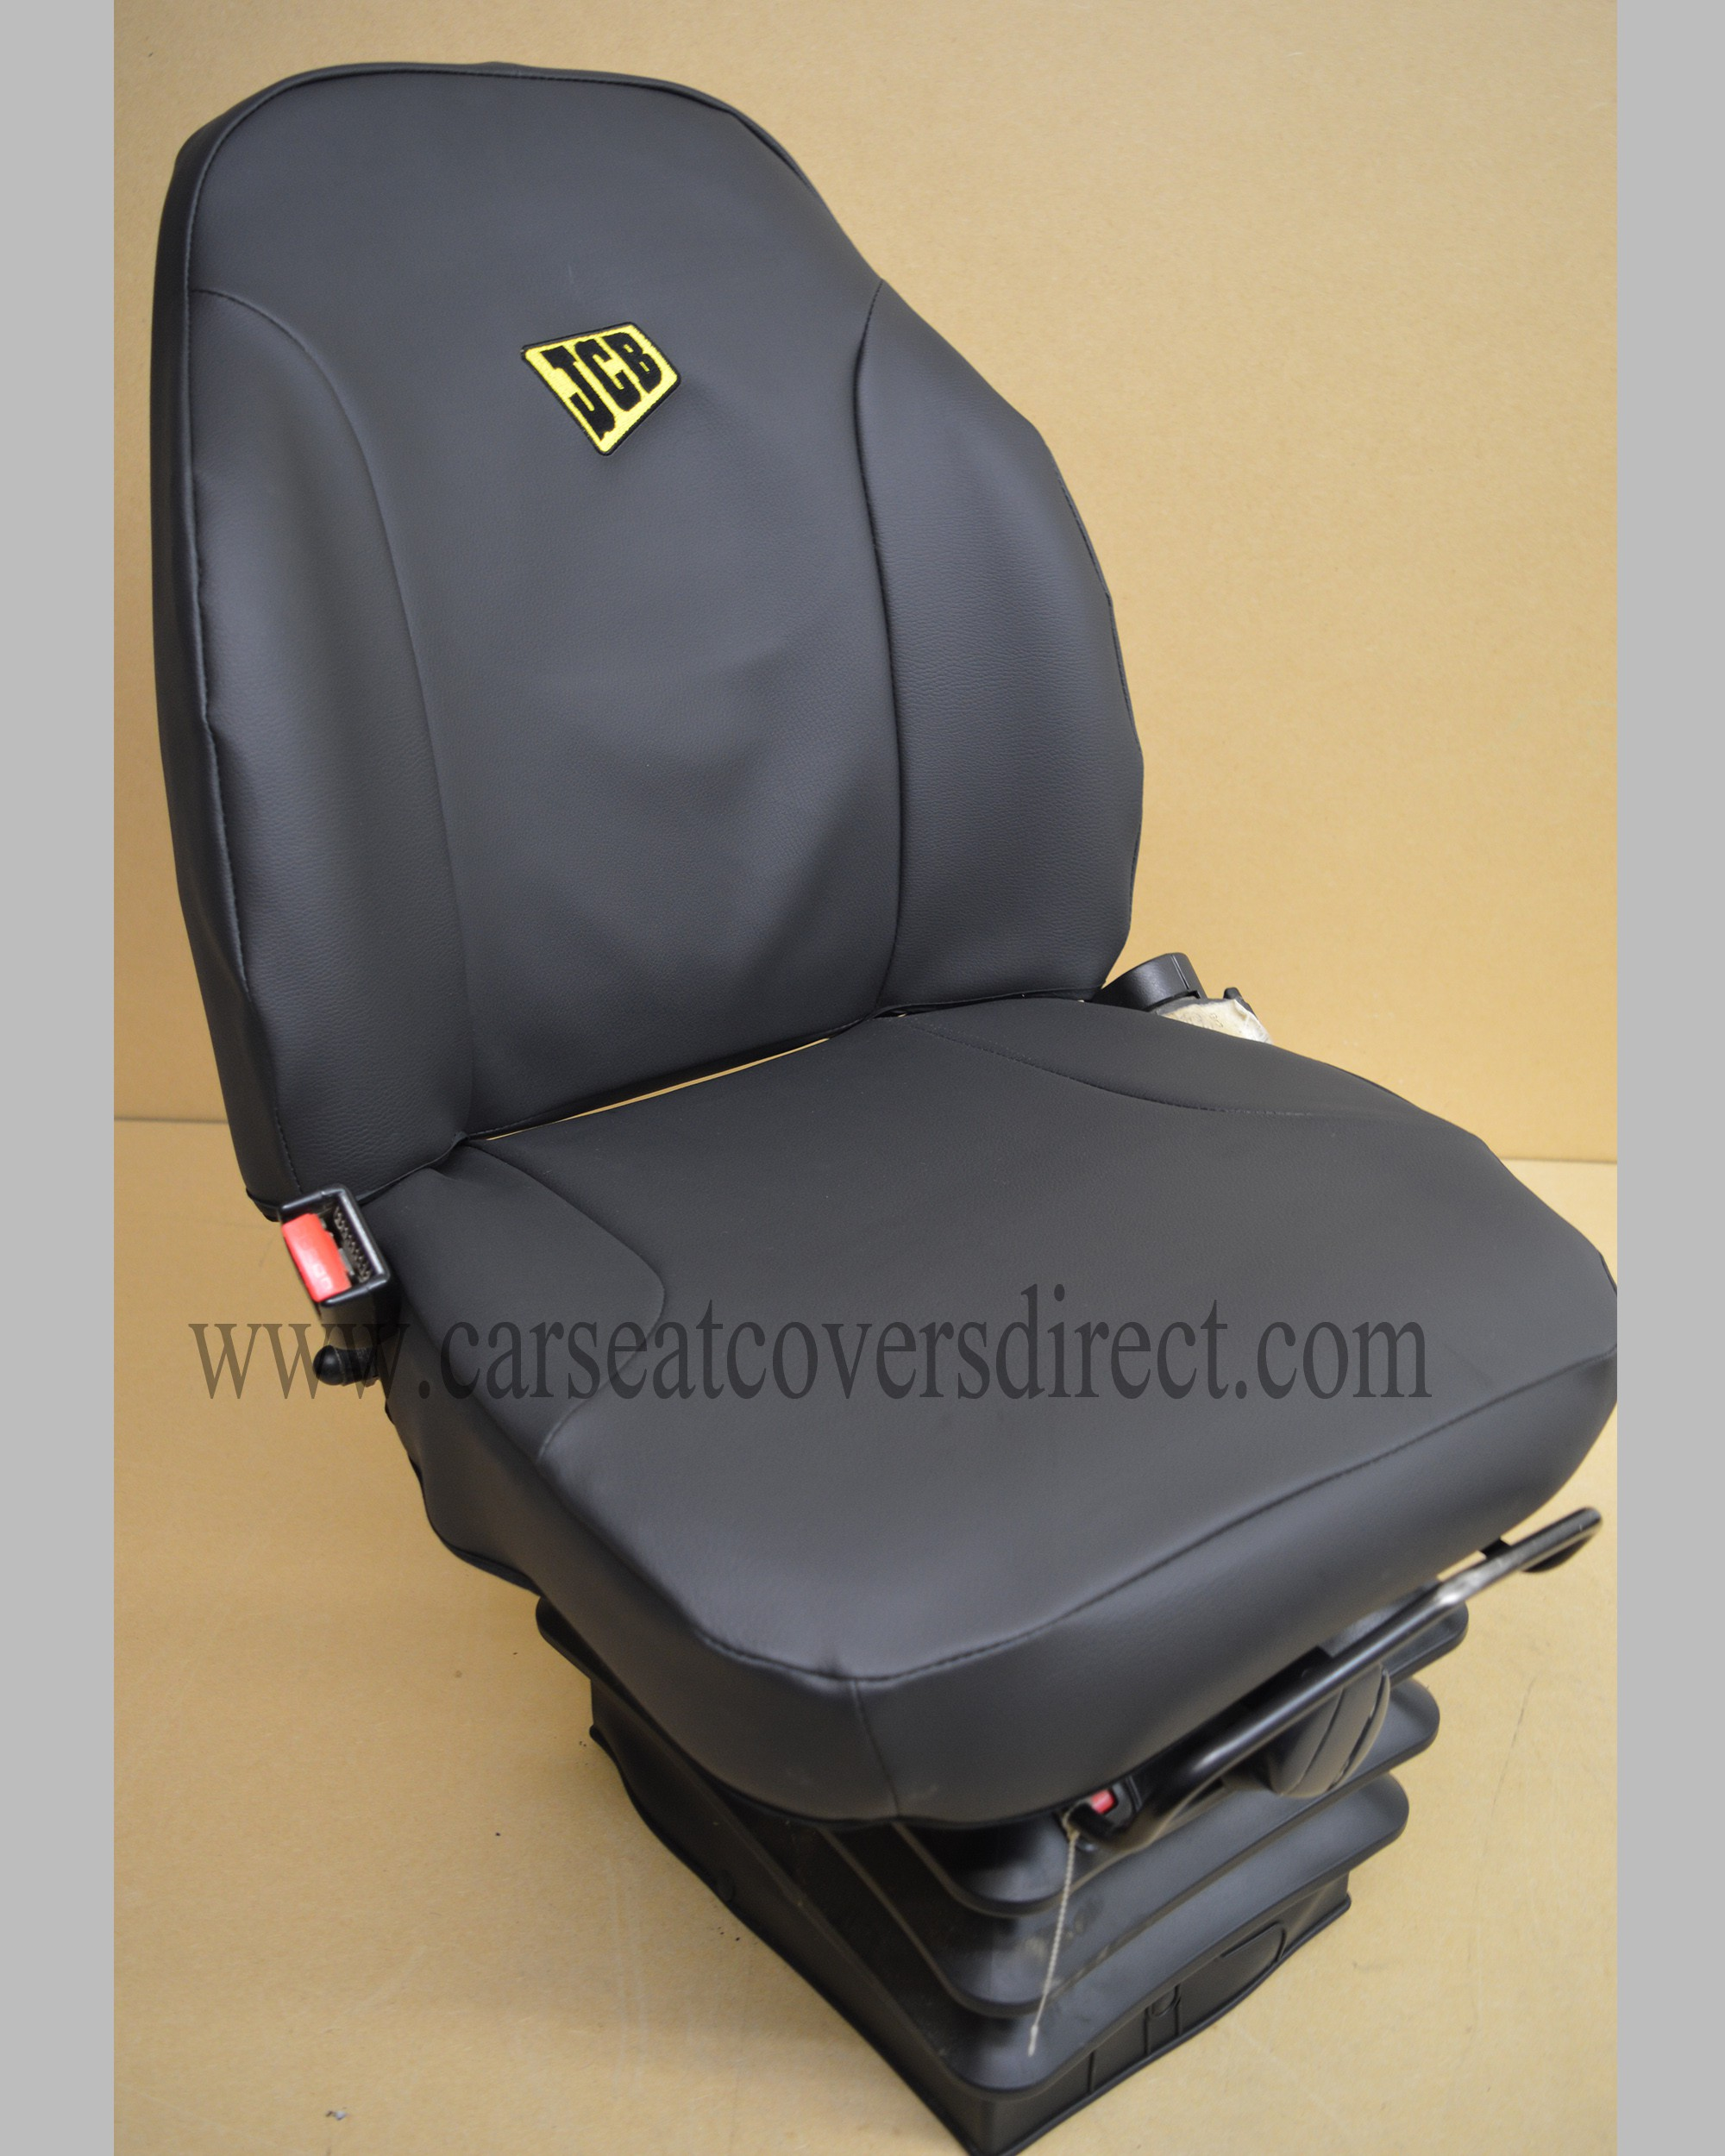 JCB 535-140 telescopic seat with black leatherette seat cover